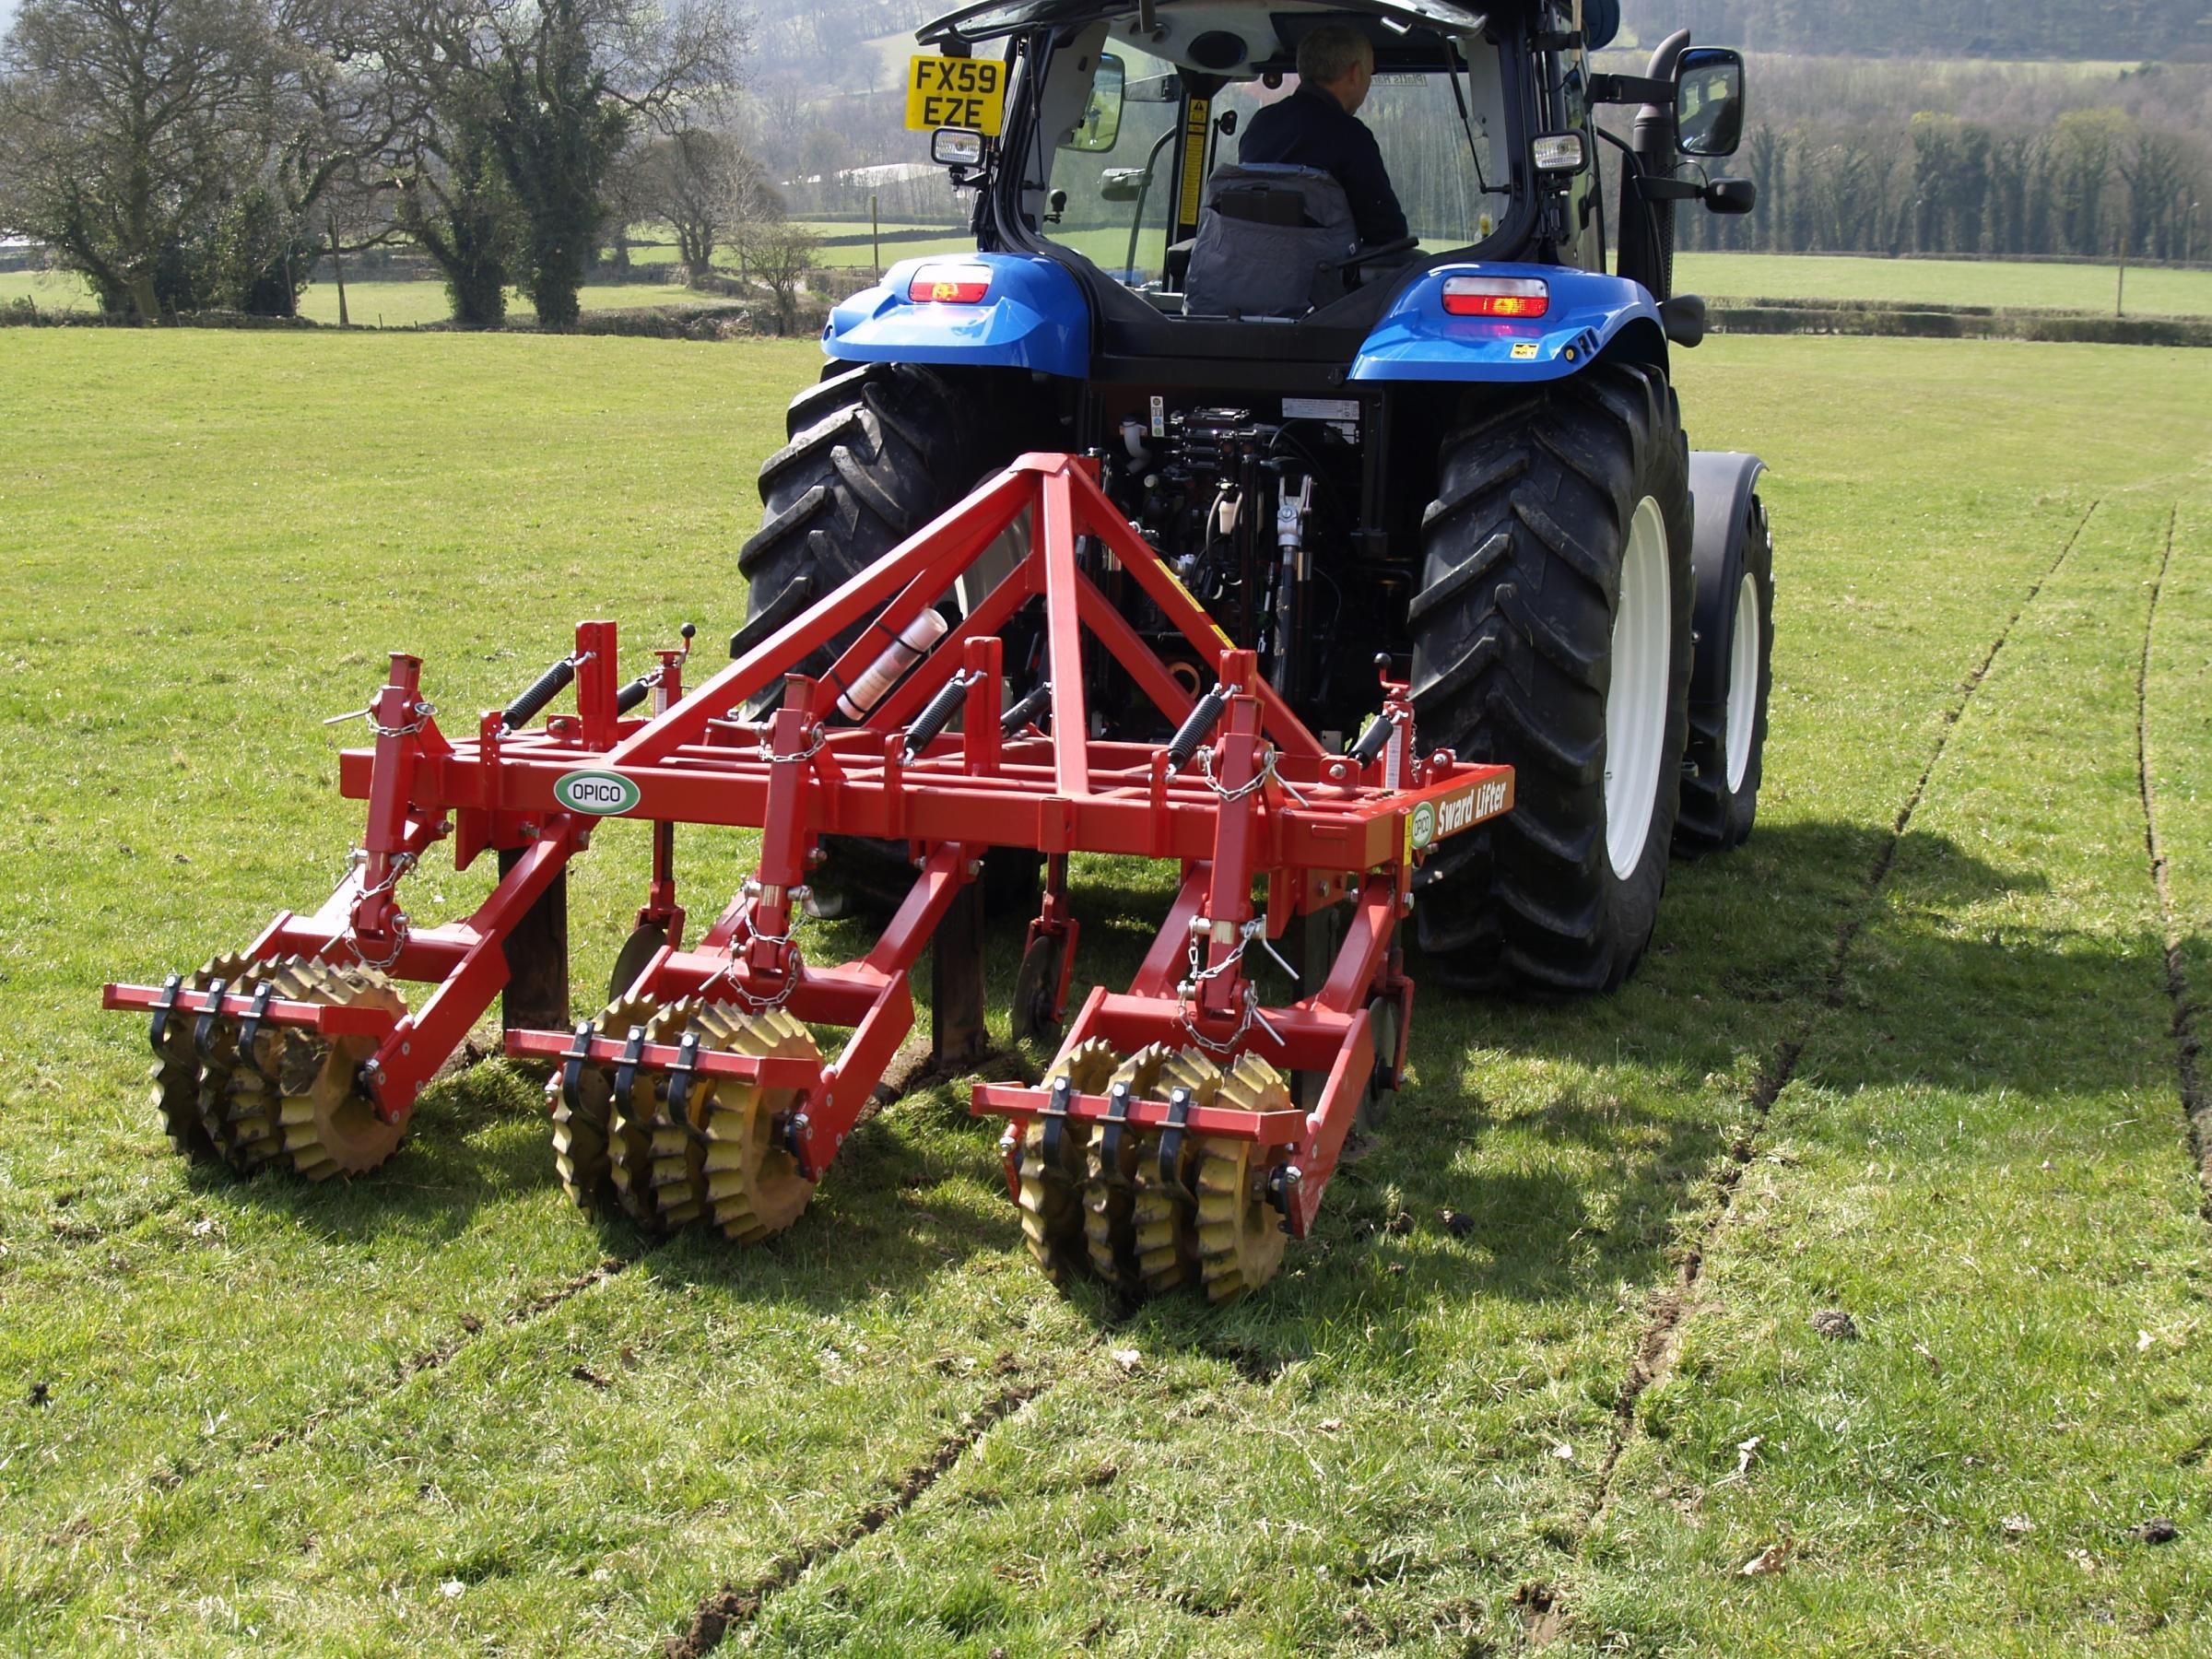 The autumn months are the ideal time to sward-lift compacted grassland and benefit from an earlier turnout and higher sward productivity.